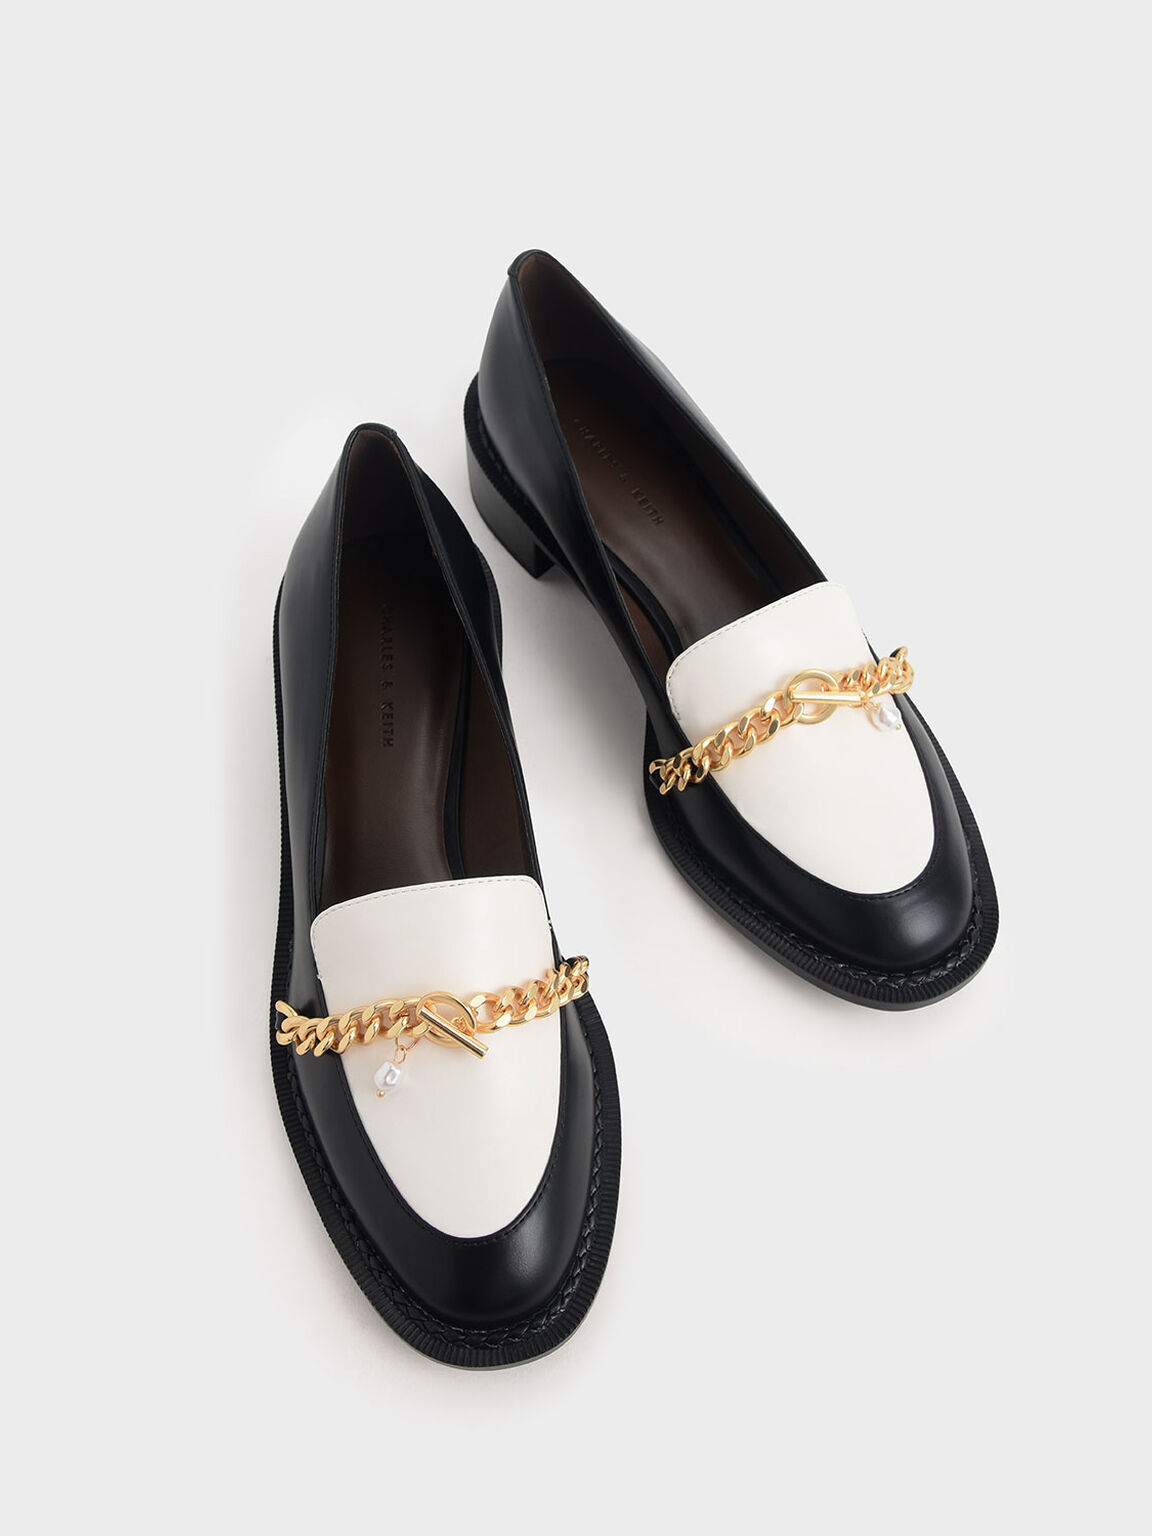 Two-Tone Chain Link Loafers, Multi, hi-res